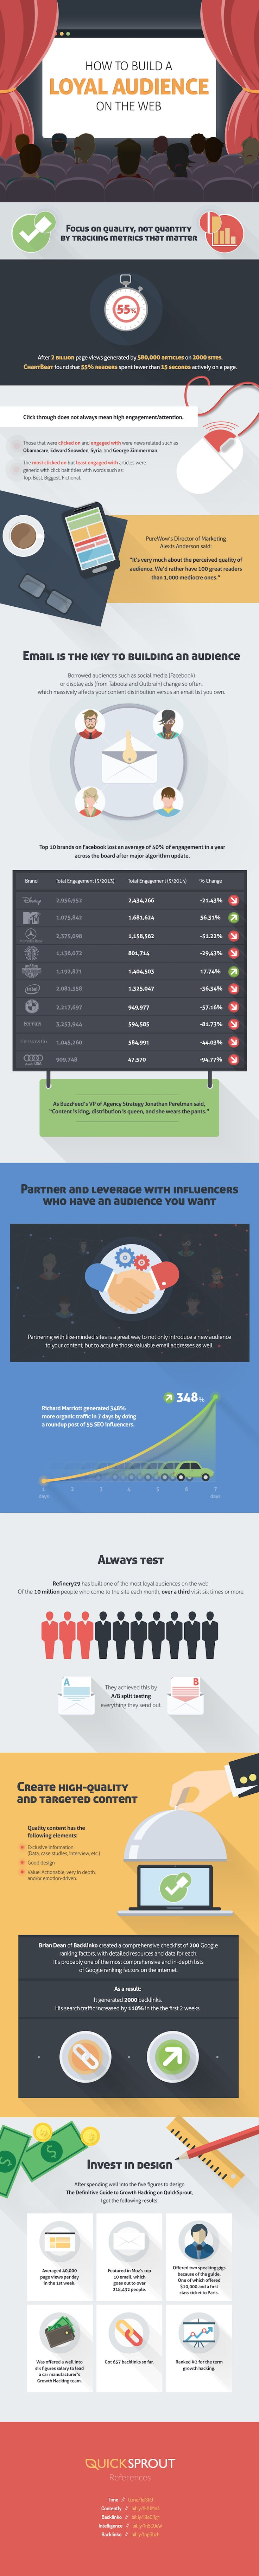 How to Build Loyal Audience on the Web